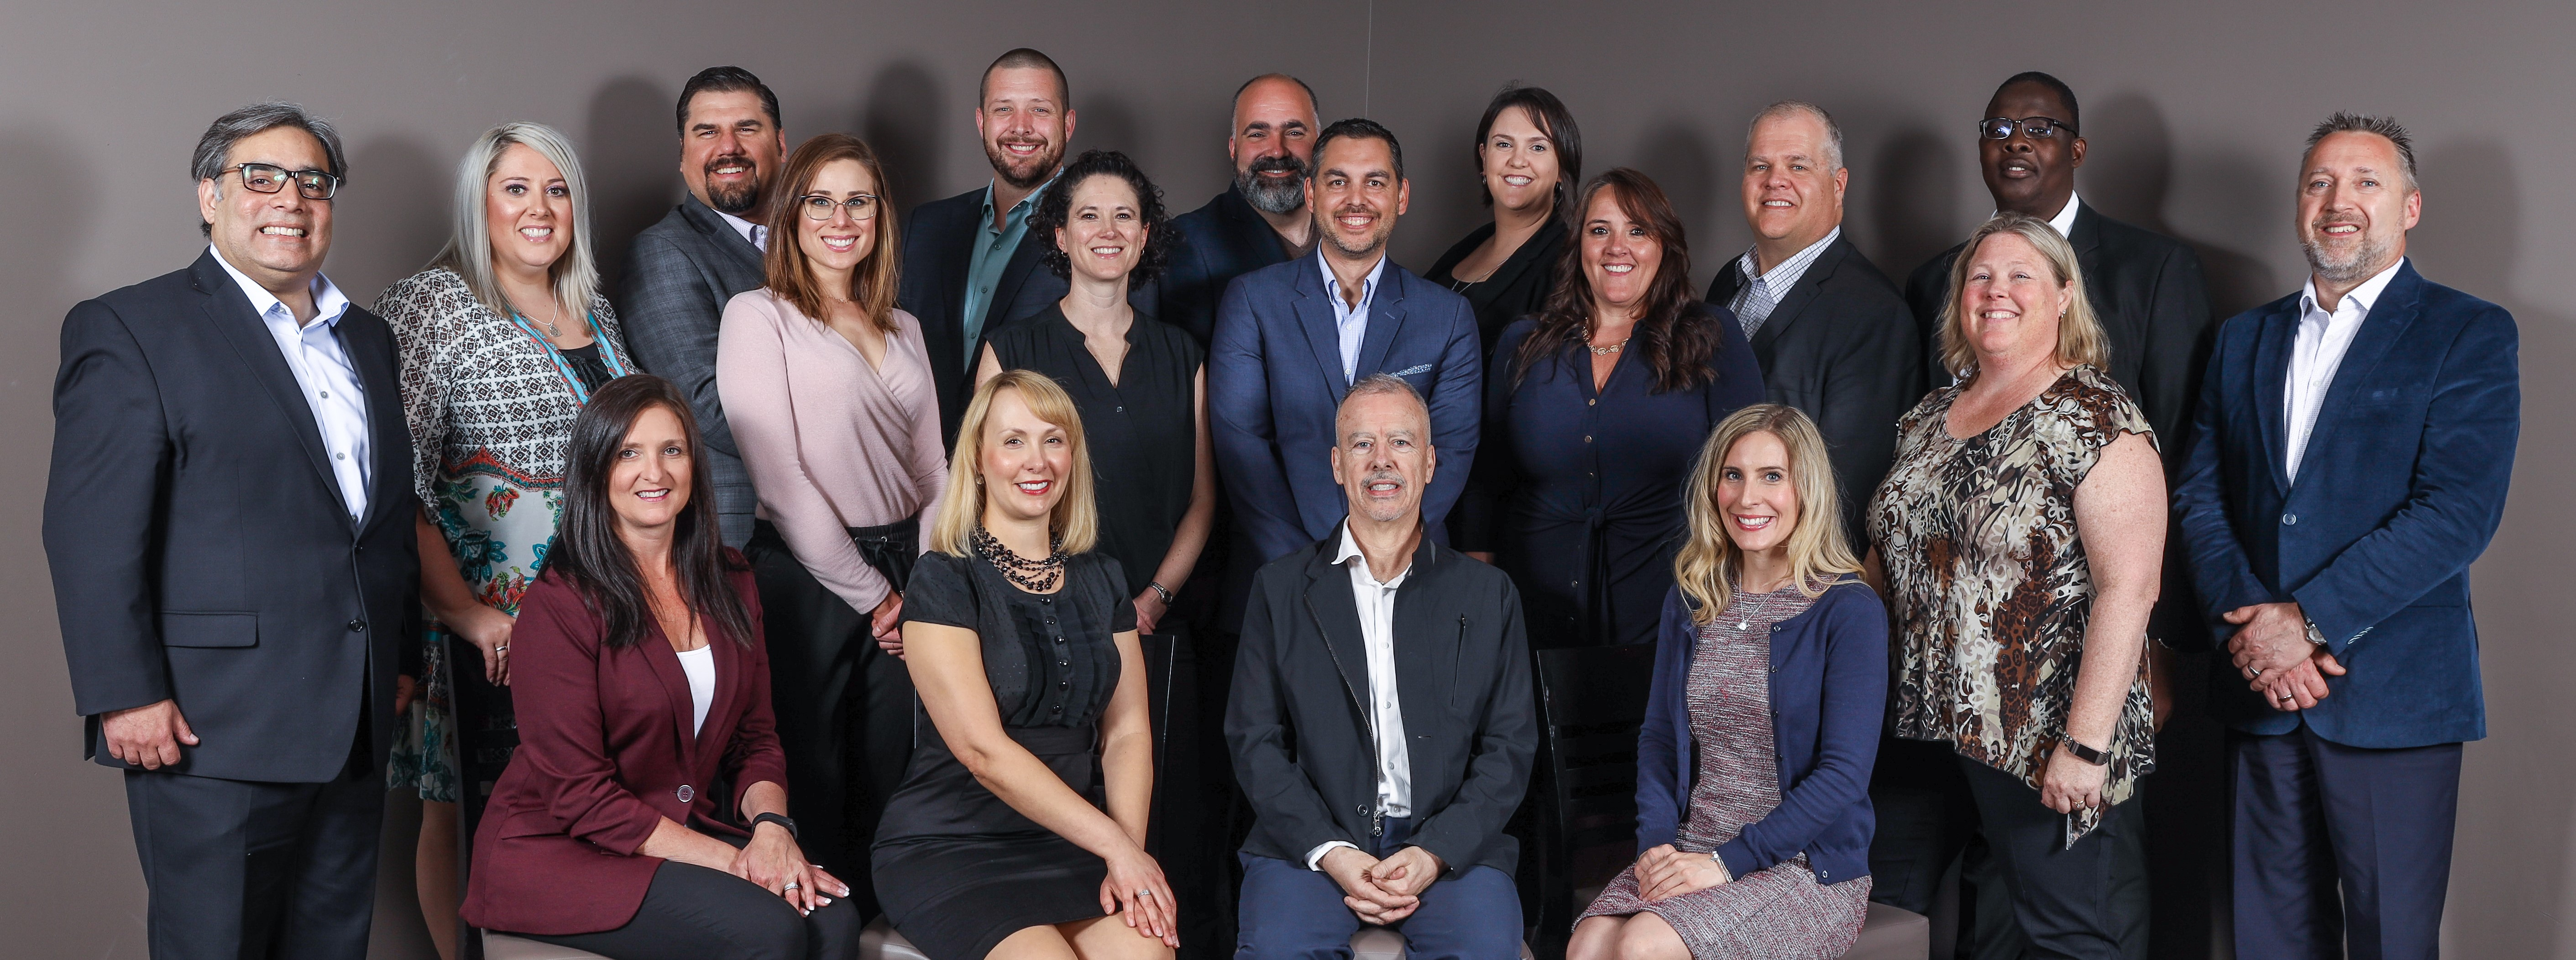 Airdrie Chamber Staff